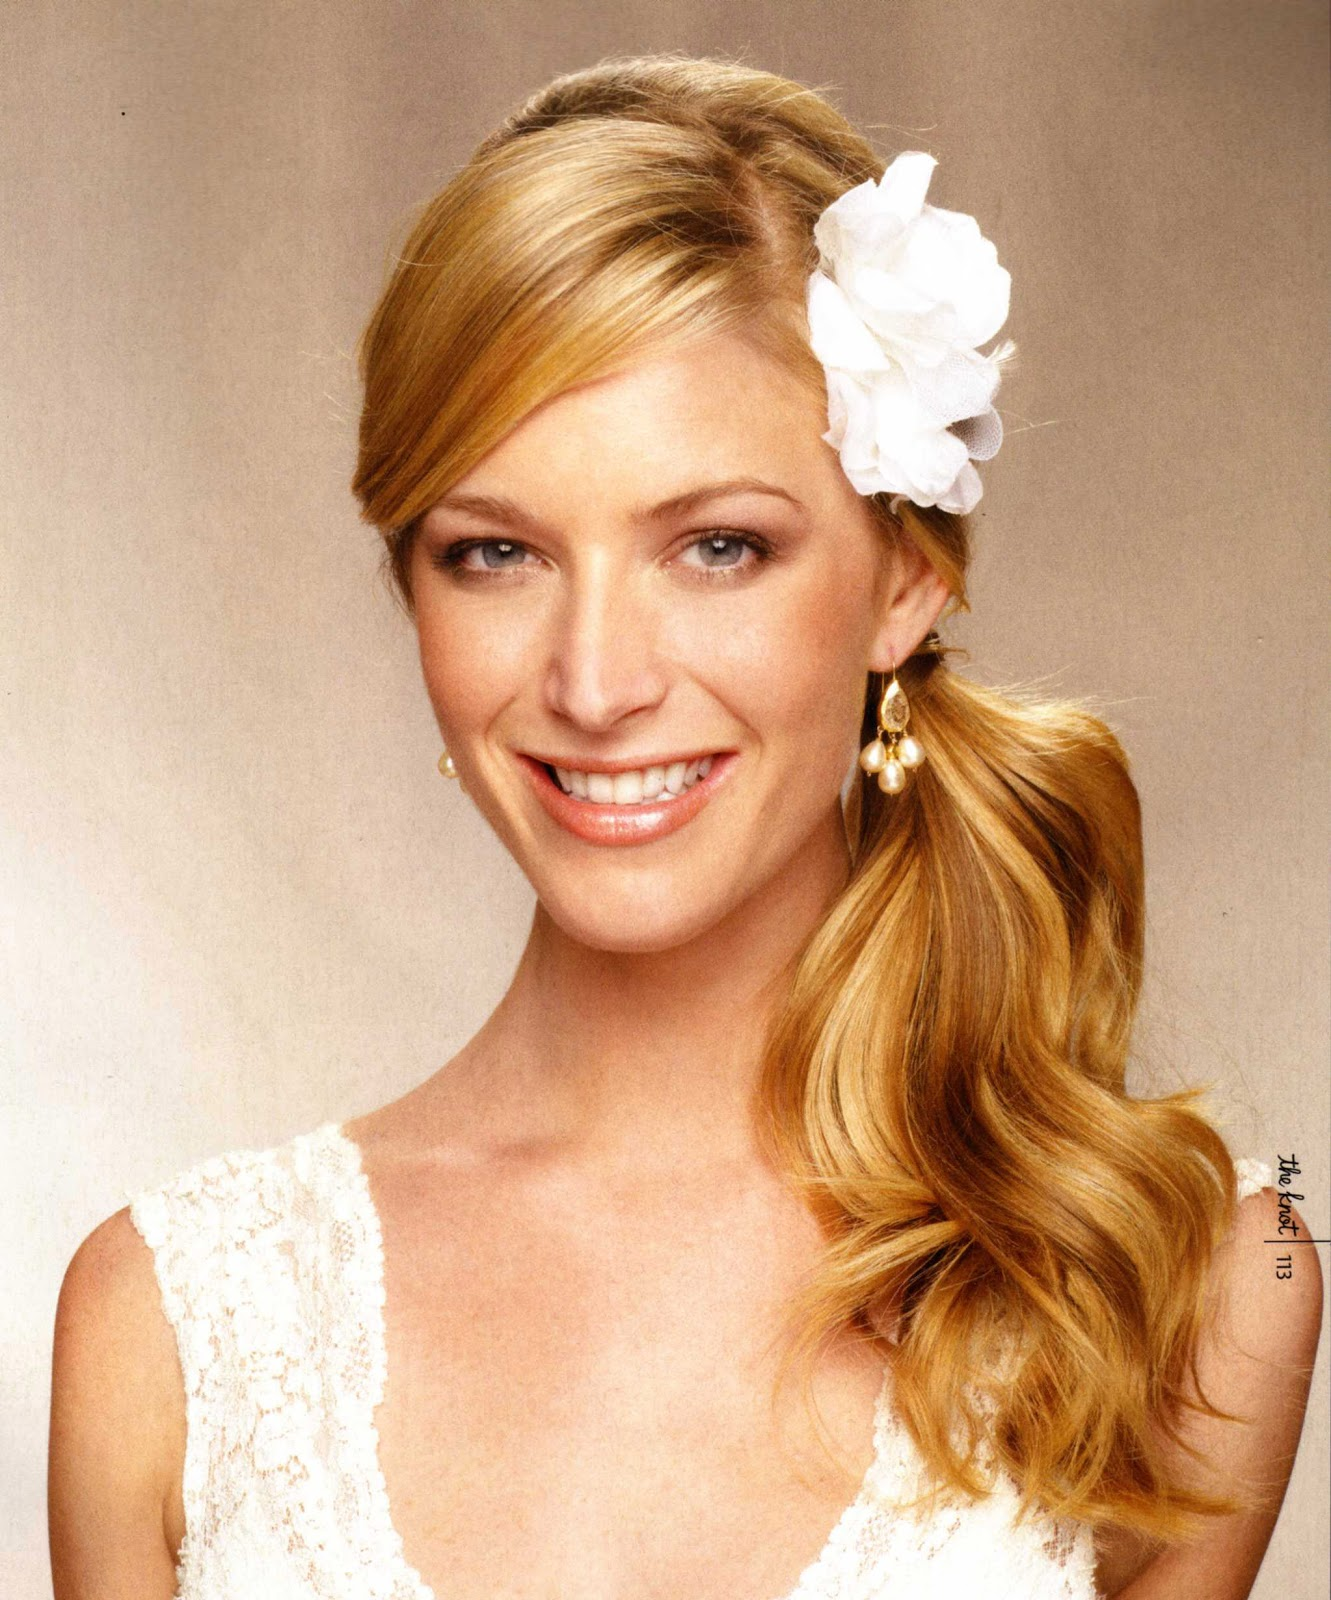 Bridesmaid Hair: Bridesmaid Hairstyles 2013 : Bridesmaids Hairstyles 2013